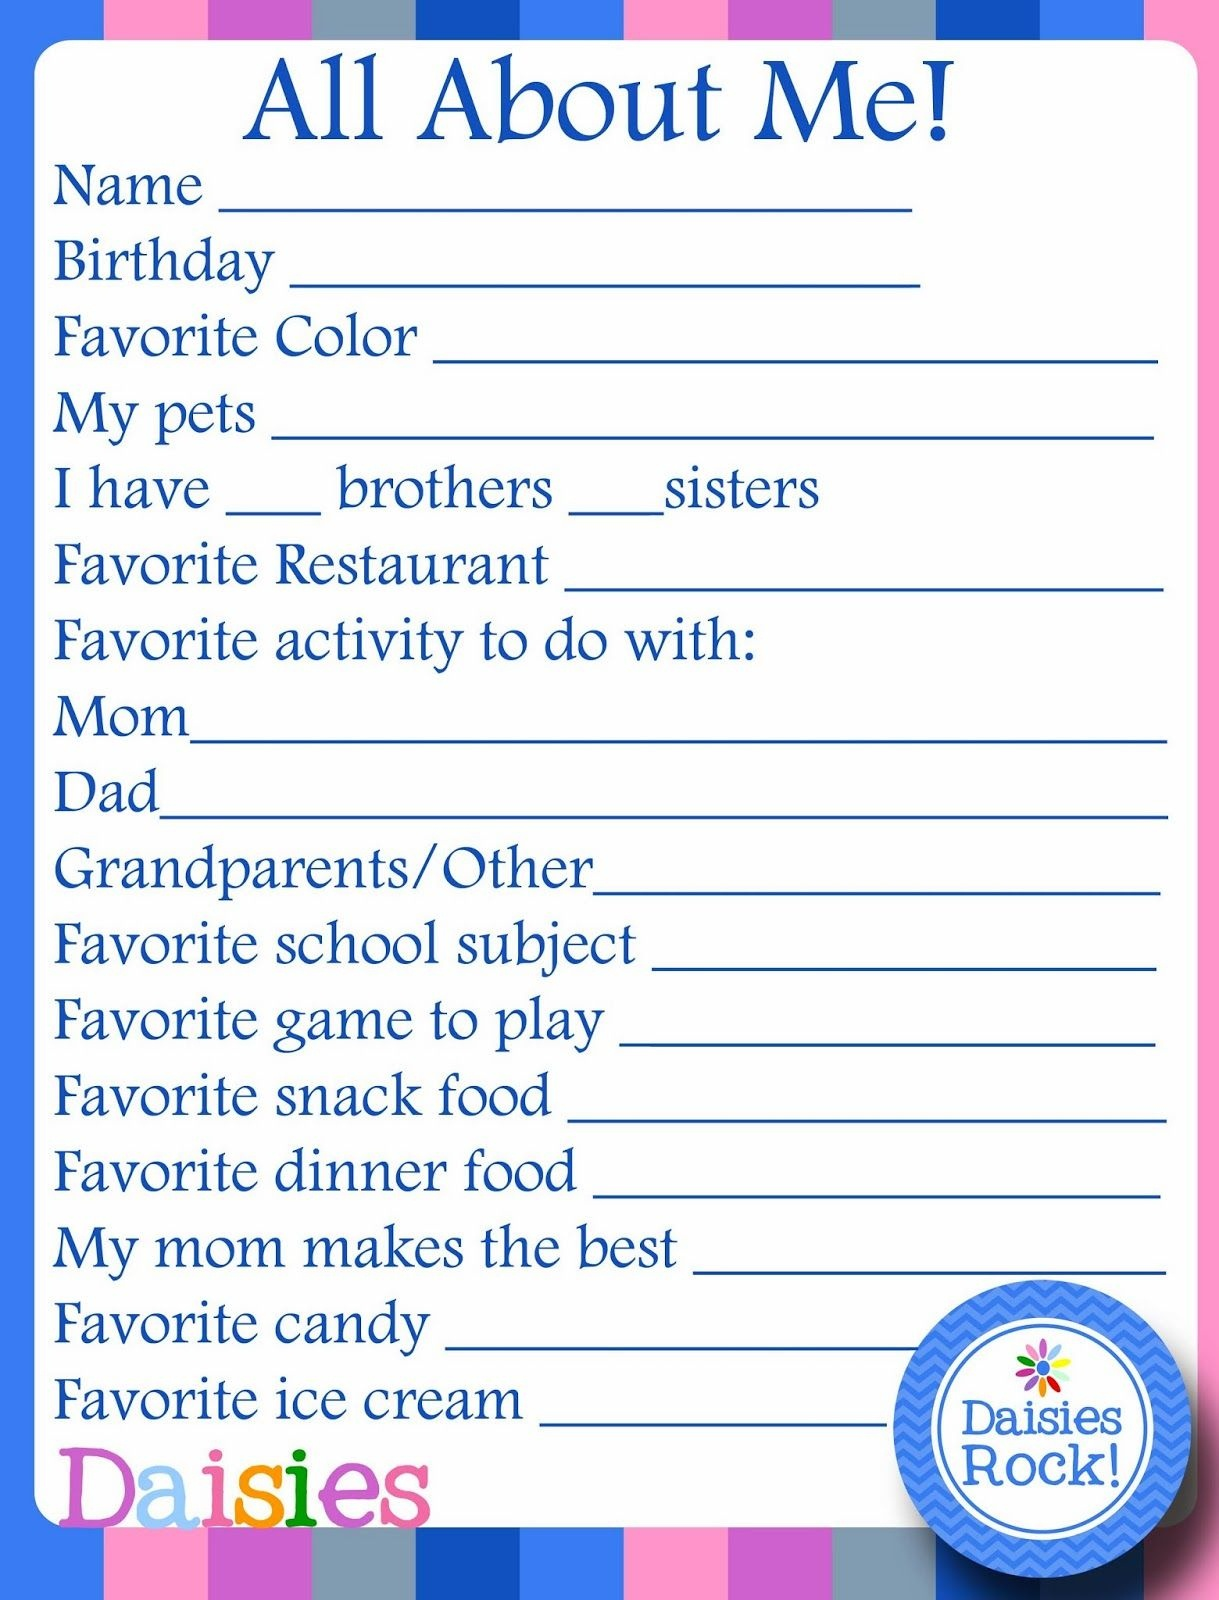 Girl Scouts: About Me Free Printable For Daisies | Girl Scouts - Free Daisy Girl Scout Printables